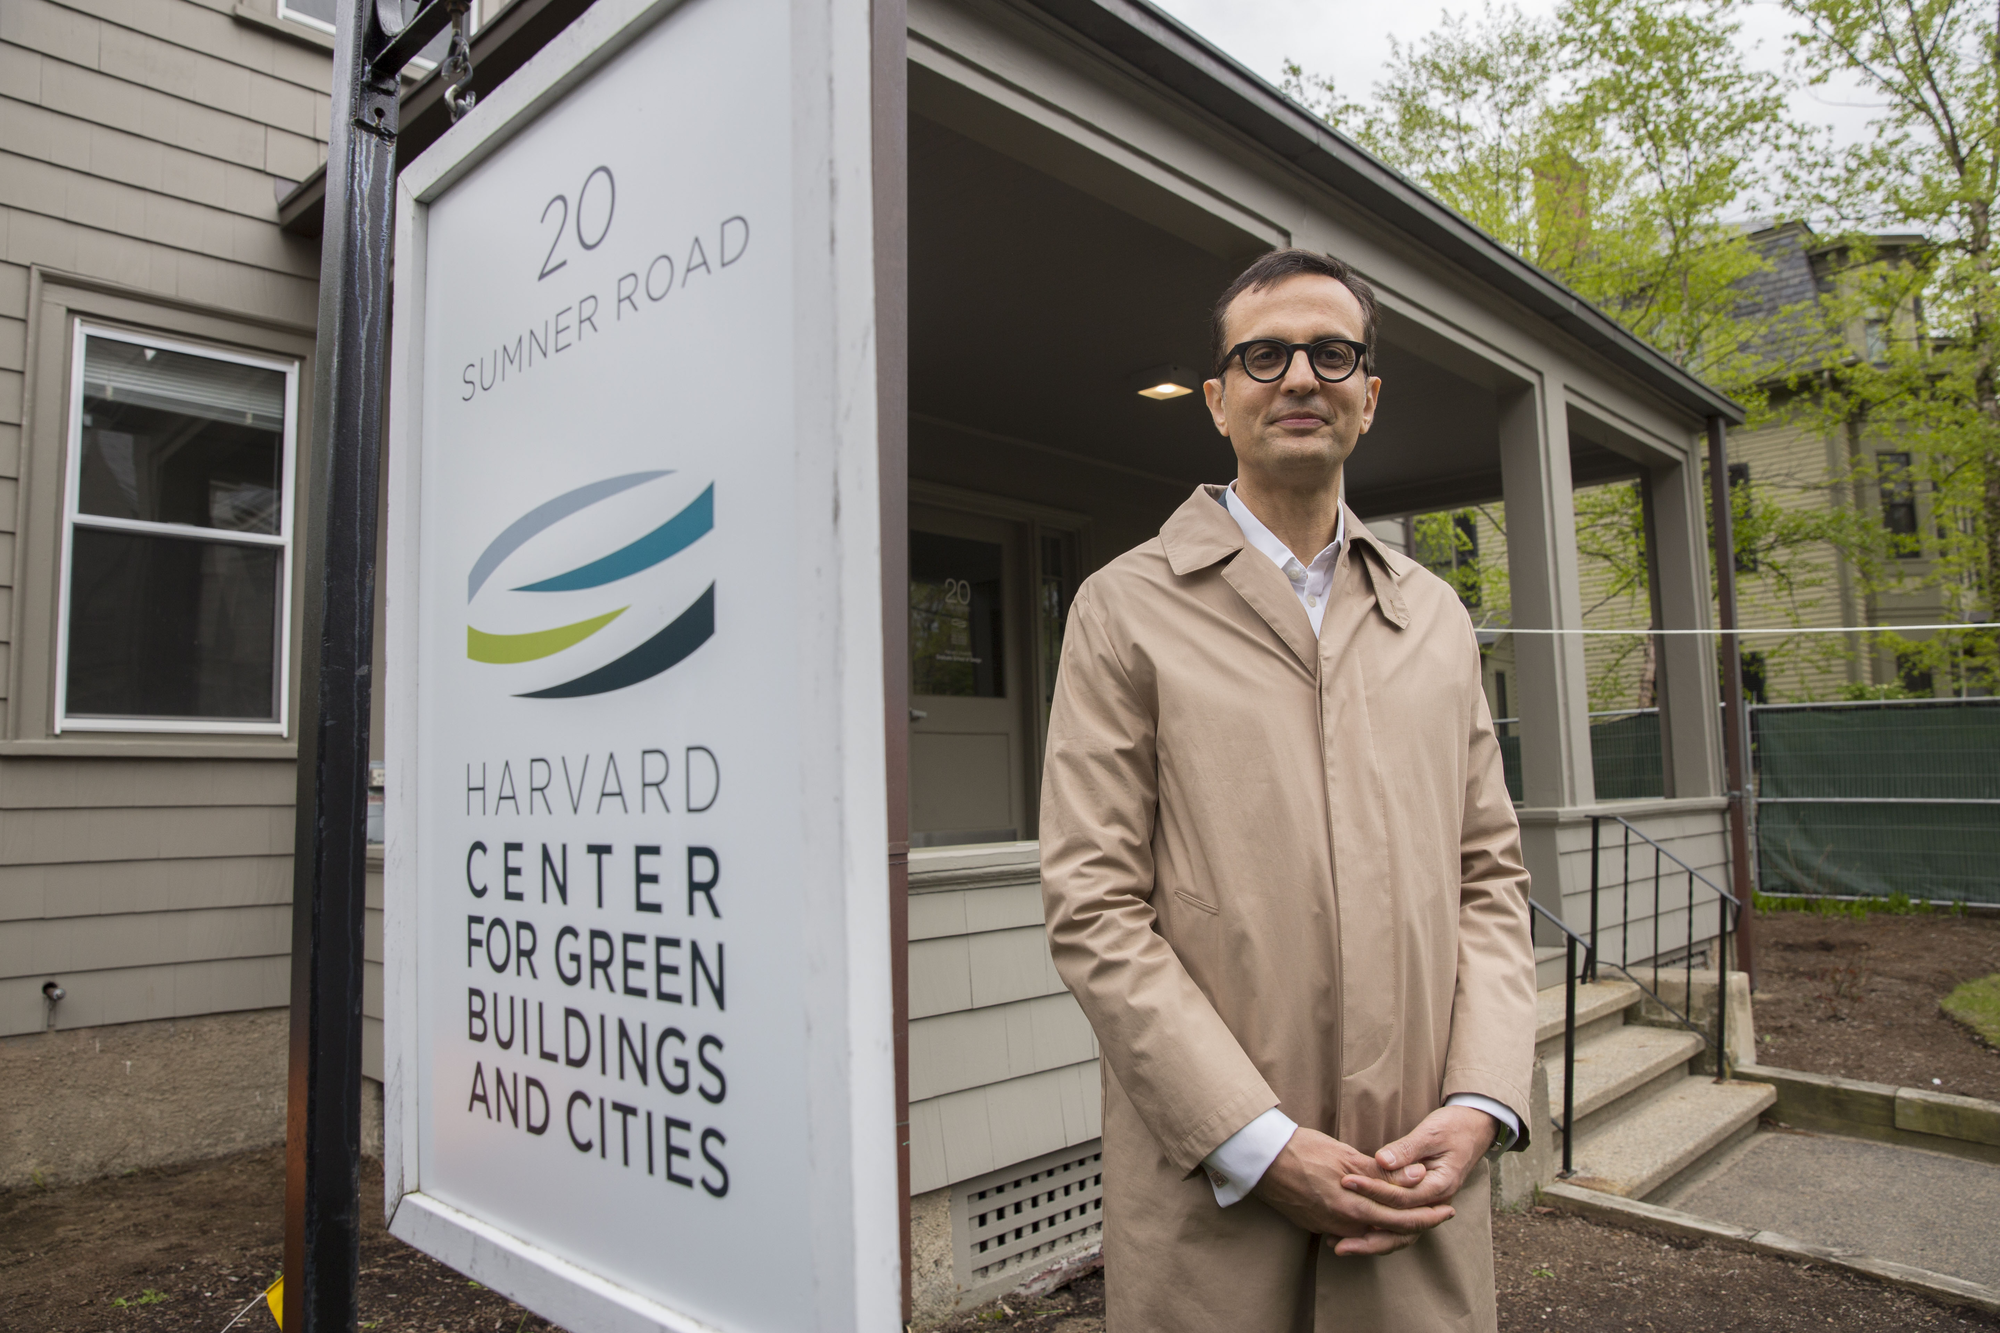 Director of the Harvard Center for Green Buildings and Cities Ali Malkawi